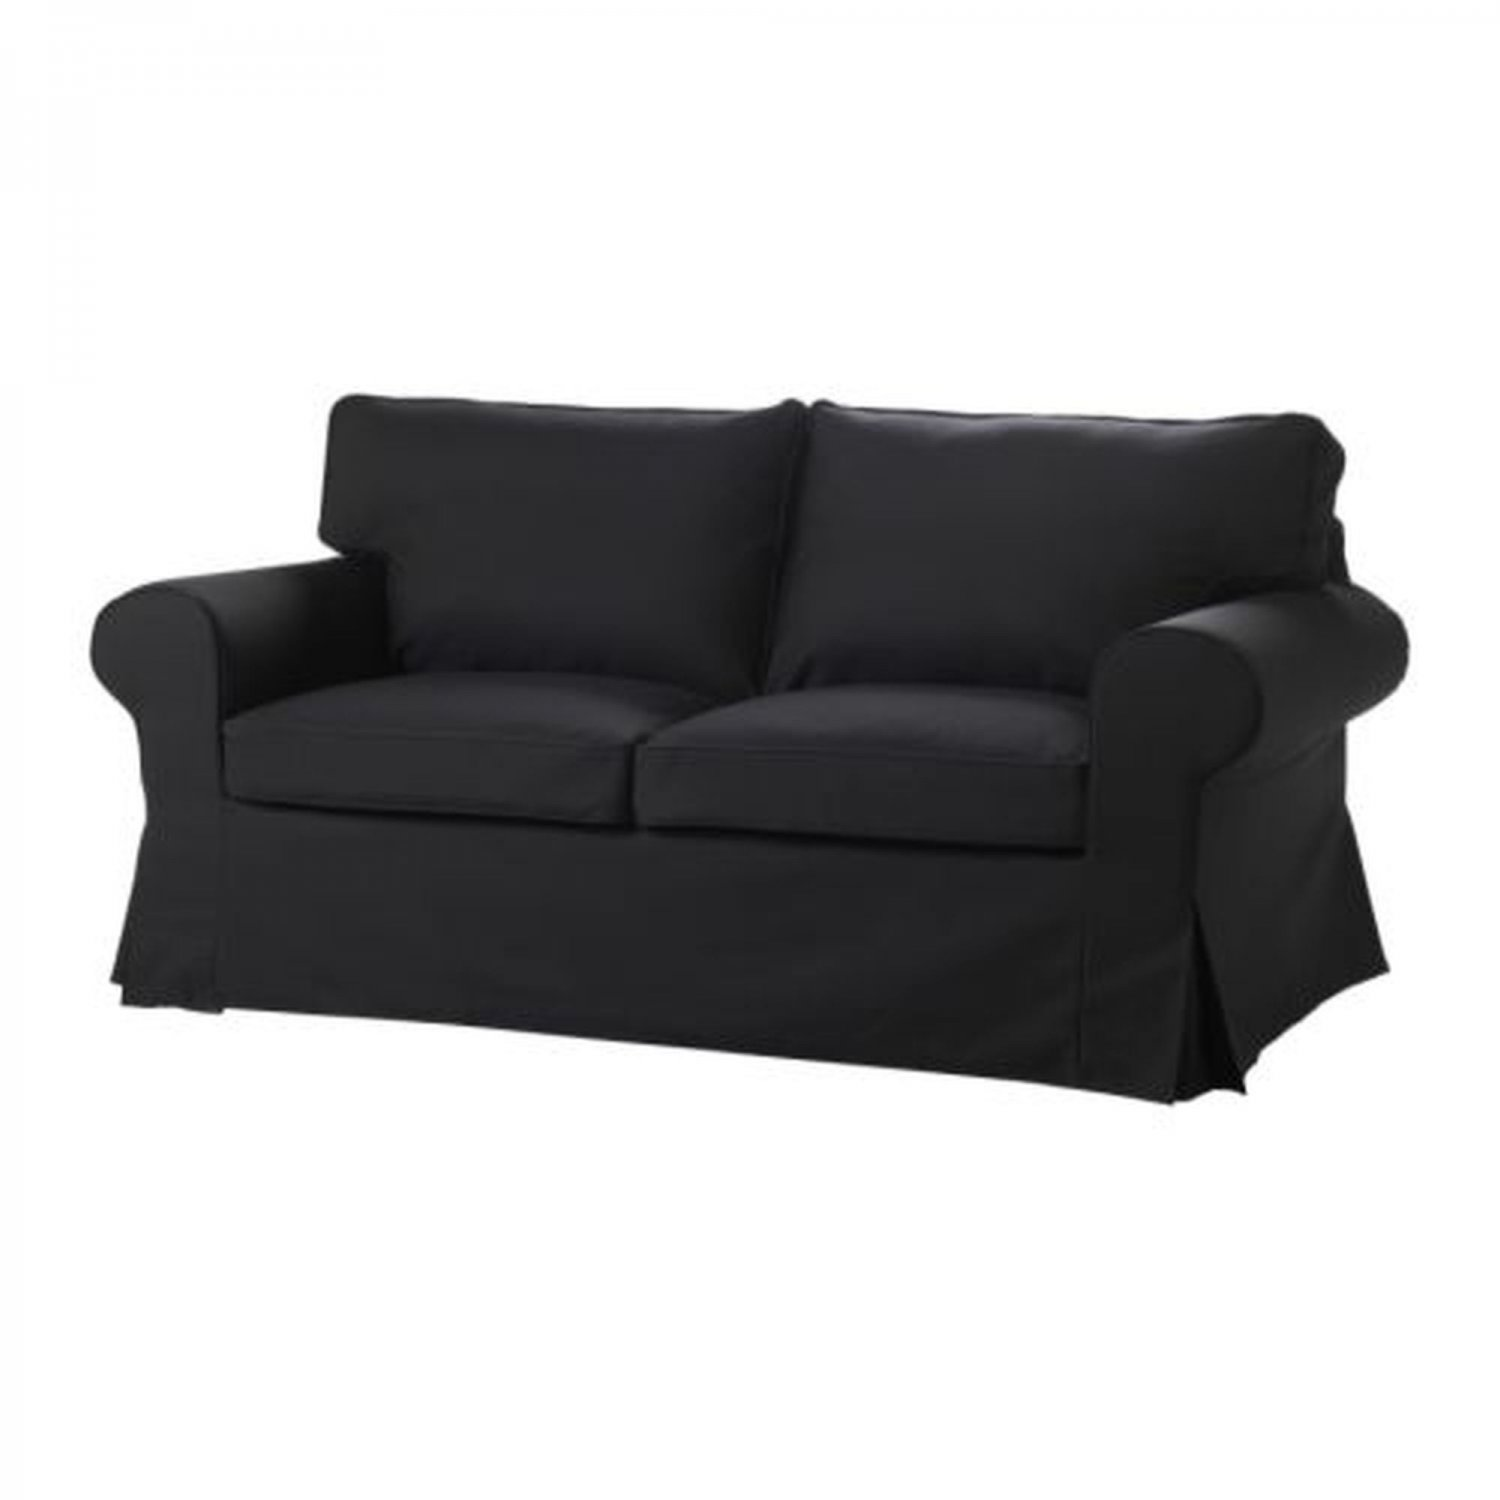 ikea ektorp sofa bed slipcover sofabed cover idemo black bezug housse. Black Bedroom Furniture Sets. Home Design Ideas